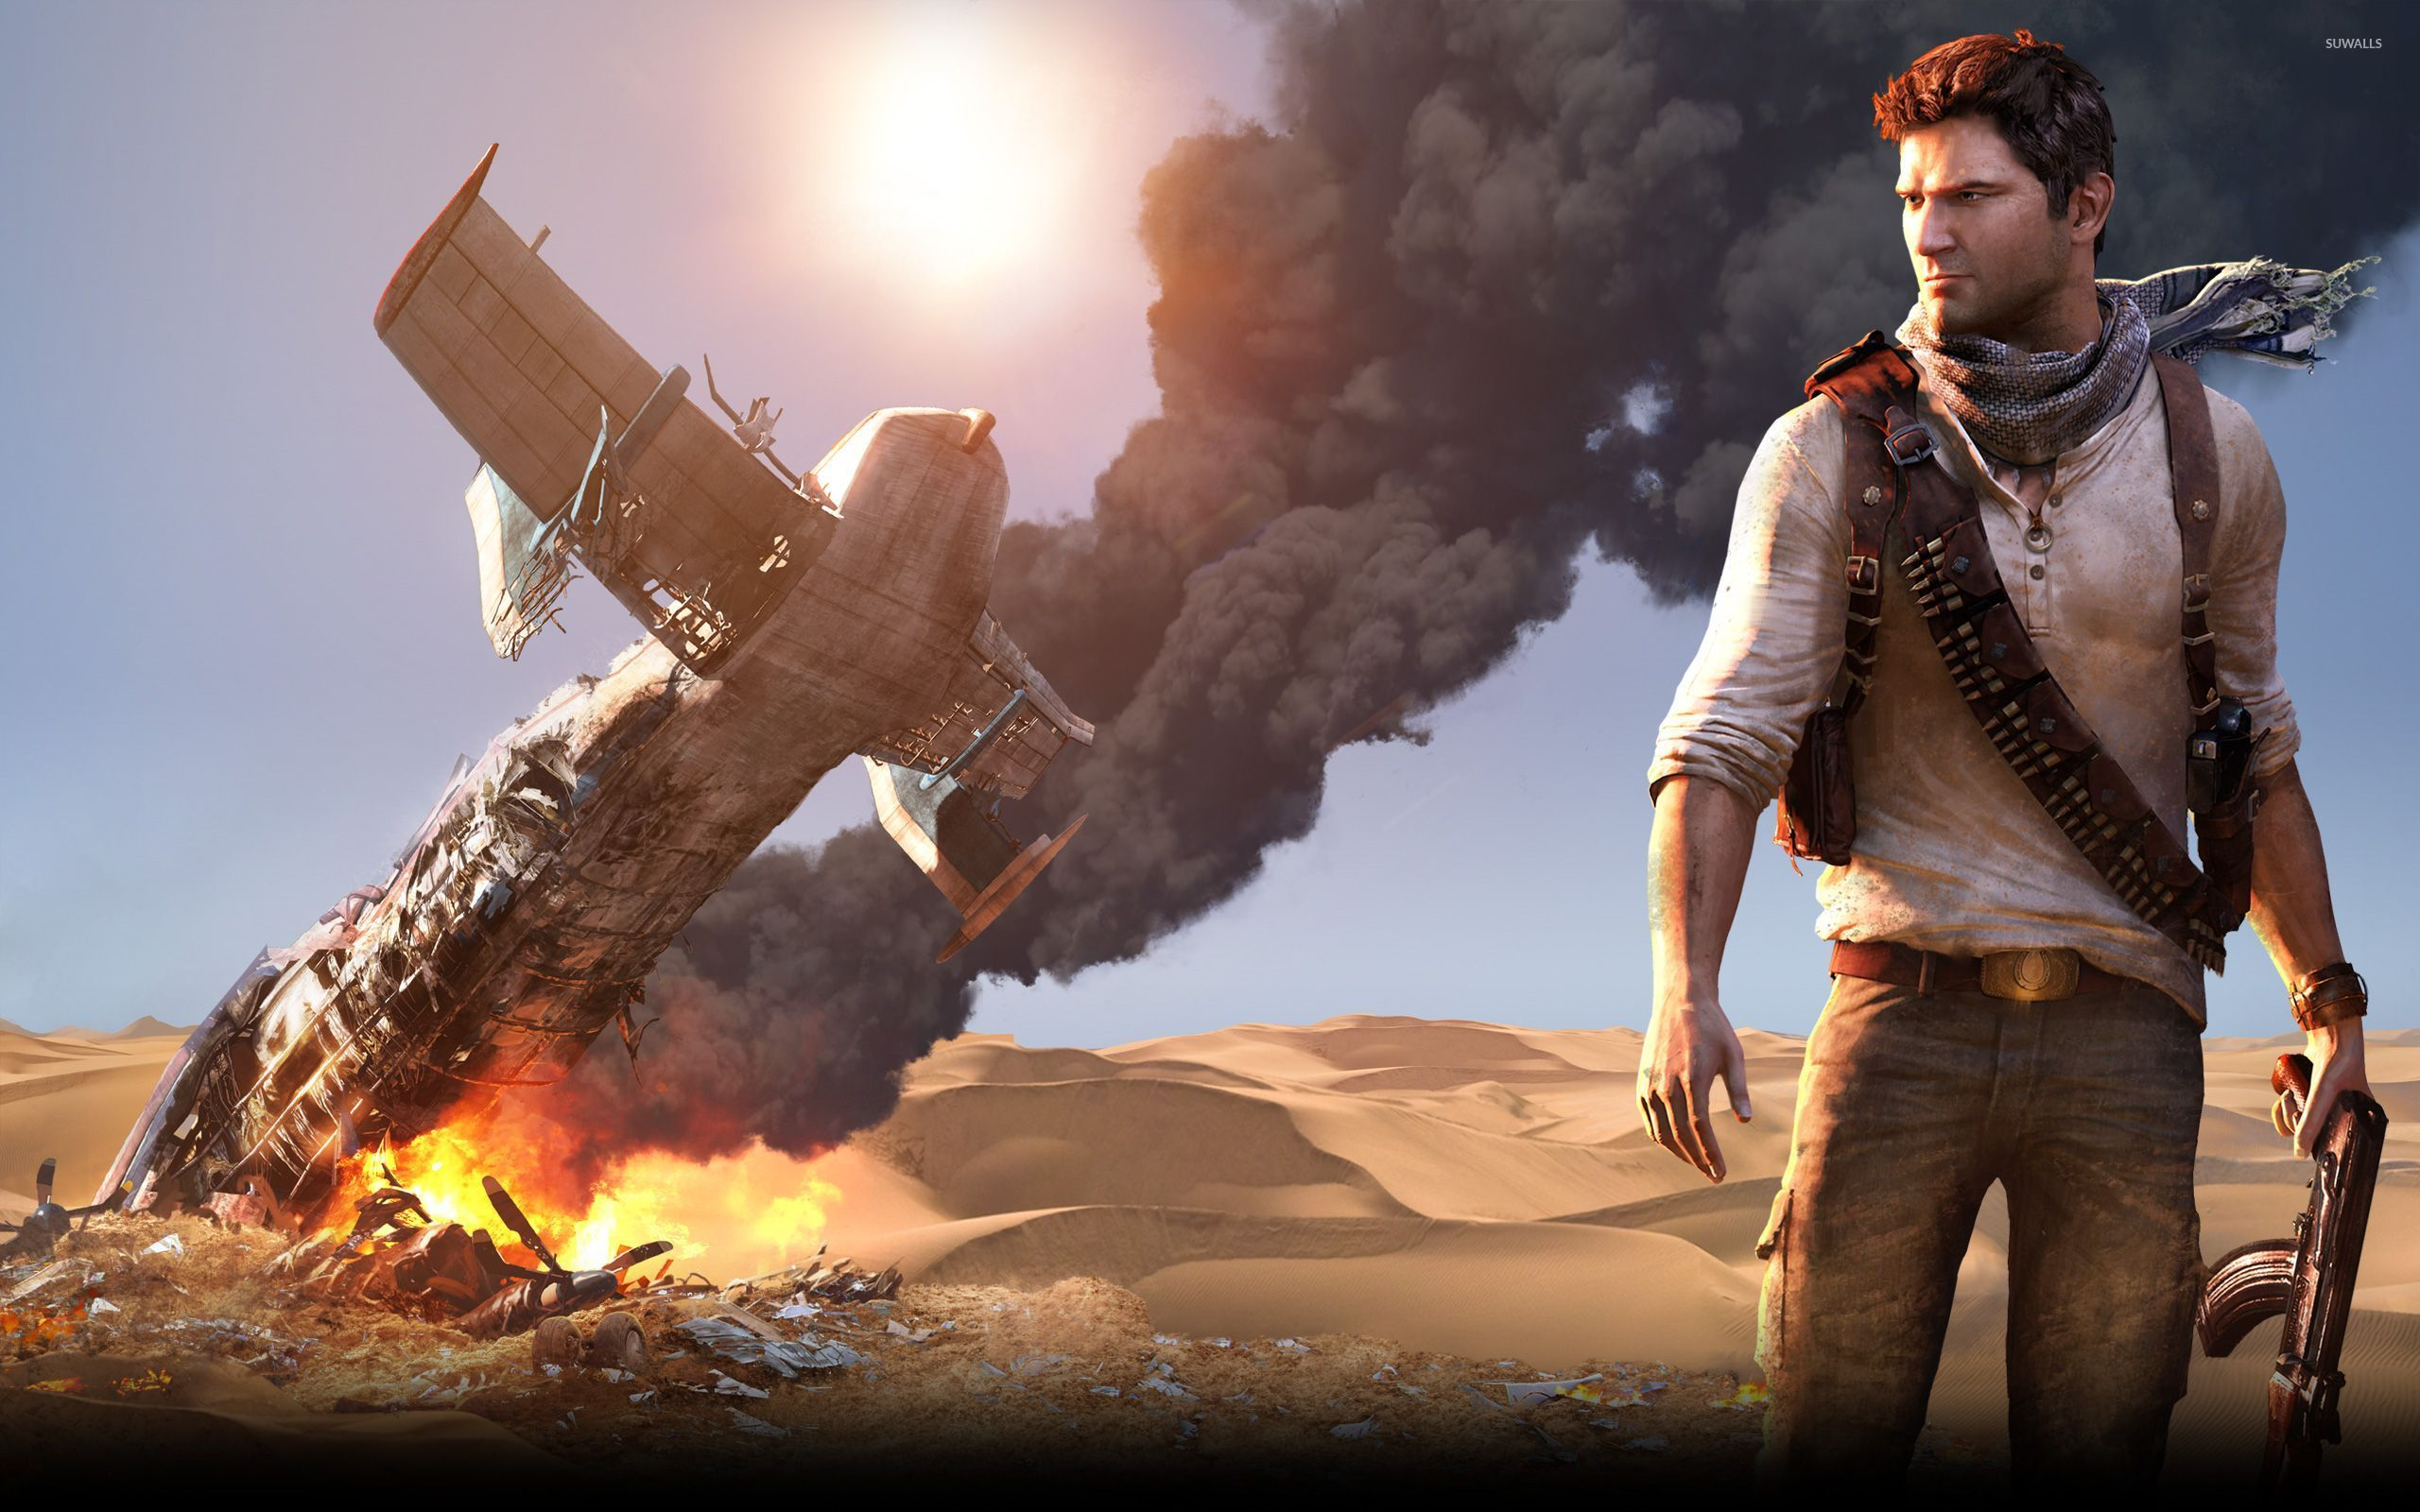 Drake Wallpaper Quotes Uncharted 3 Drake S Deception 6 Wallpaper Game